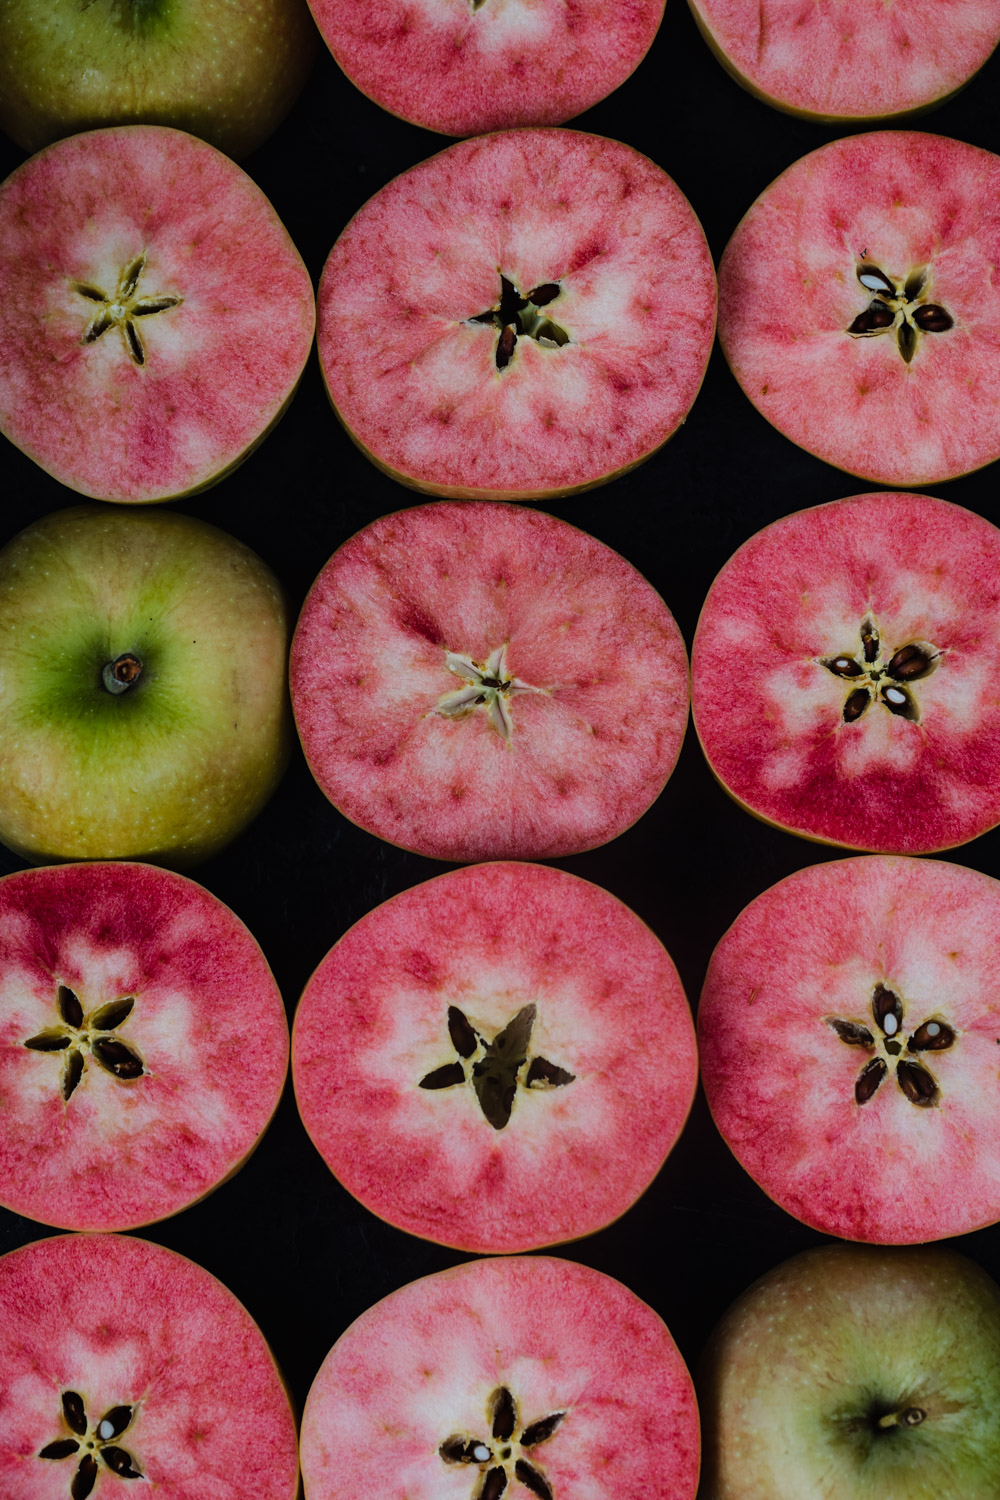 Pink hidden rose apples, cut in half to reveal their pink insides, overhead shot.